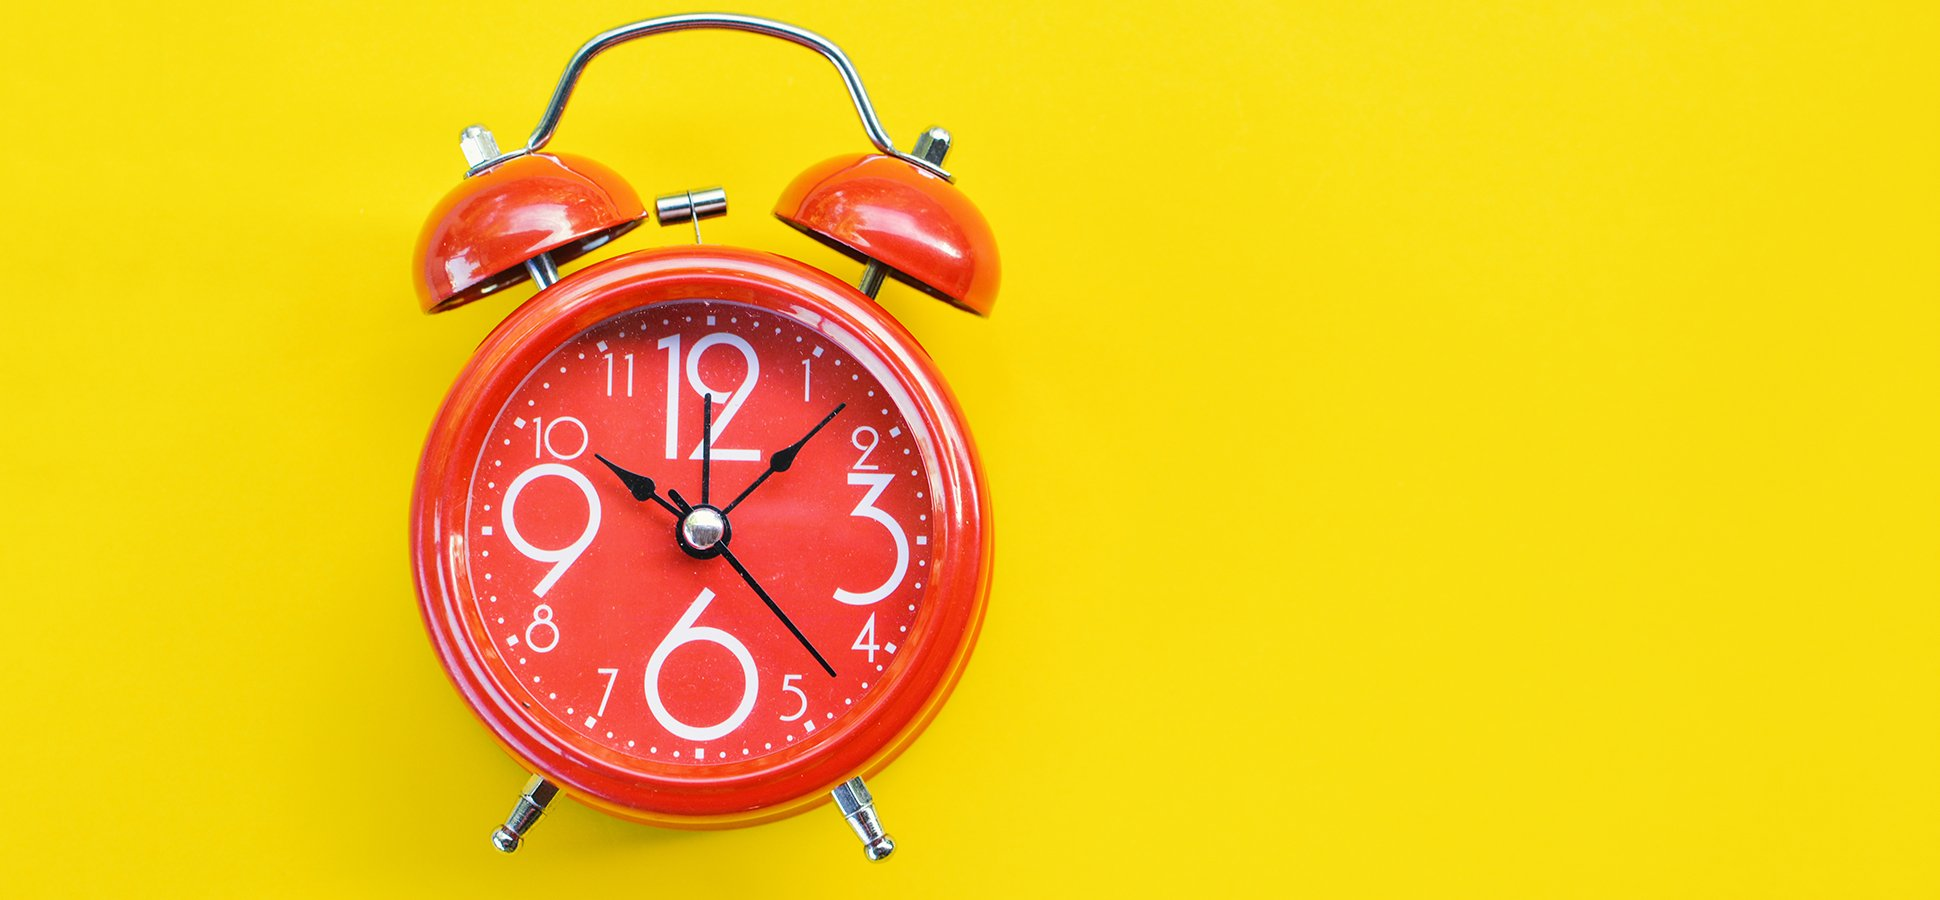 5 Tiny Tweaks to Your Daily Routine That Will Double Your Energy and Productivity